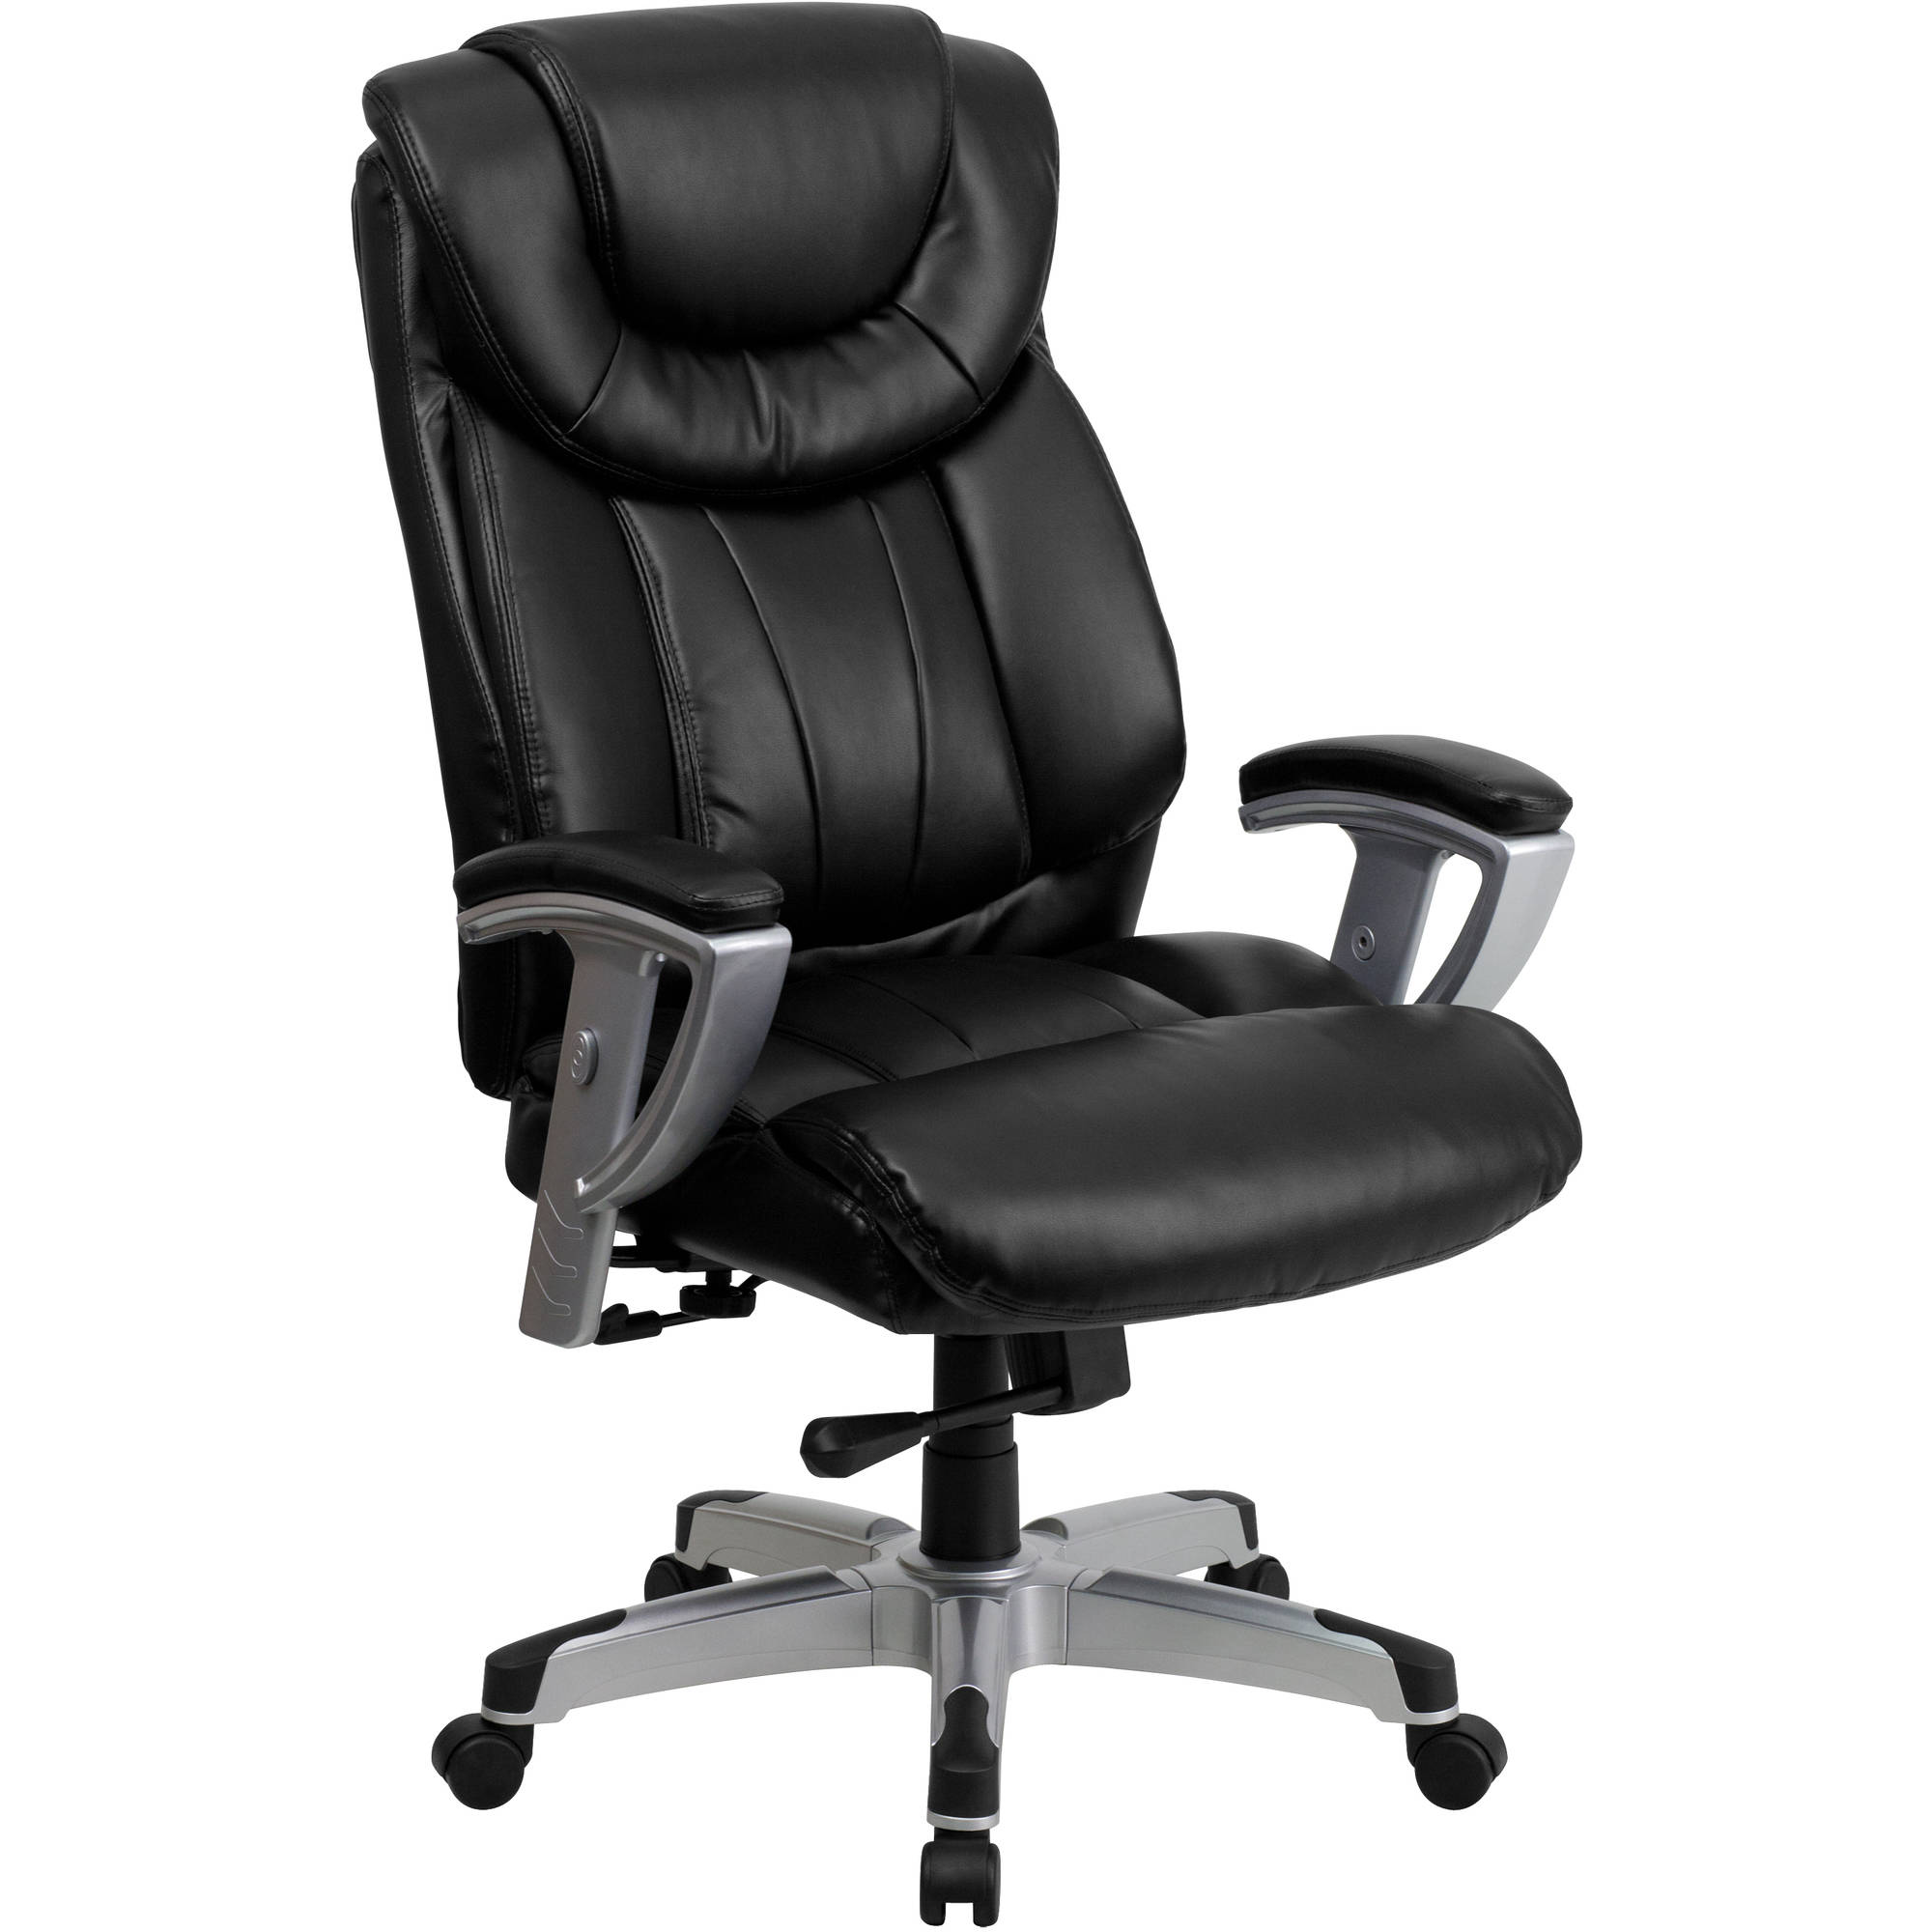 Office Chairs Adjustable Arms office chairs with adjustable arms